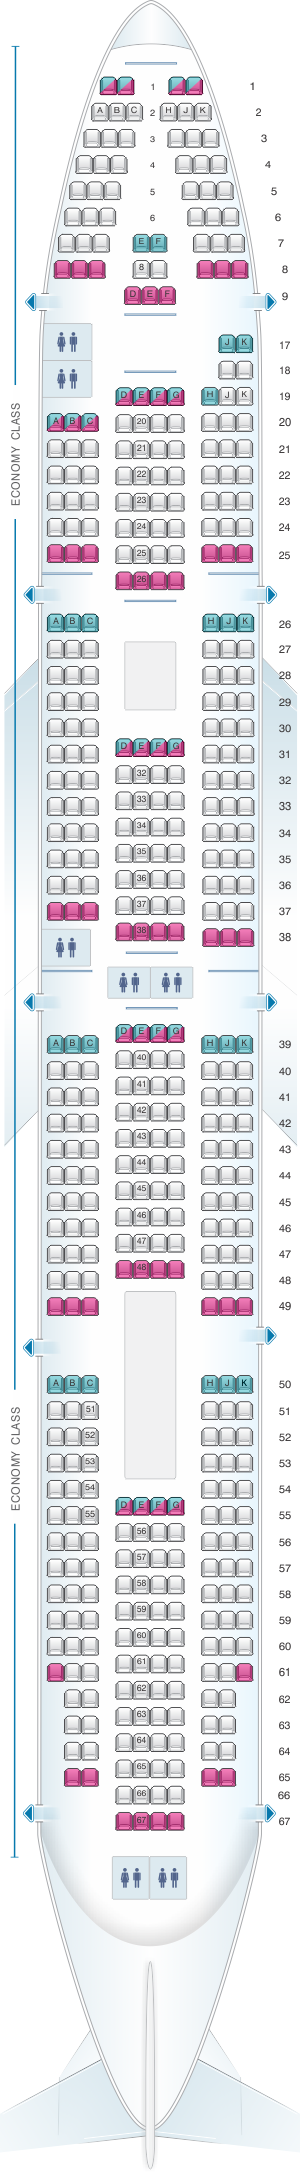 Seat map for Wamos Air Boeing B747 400